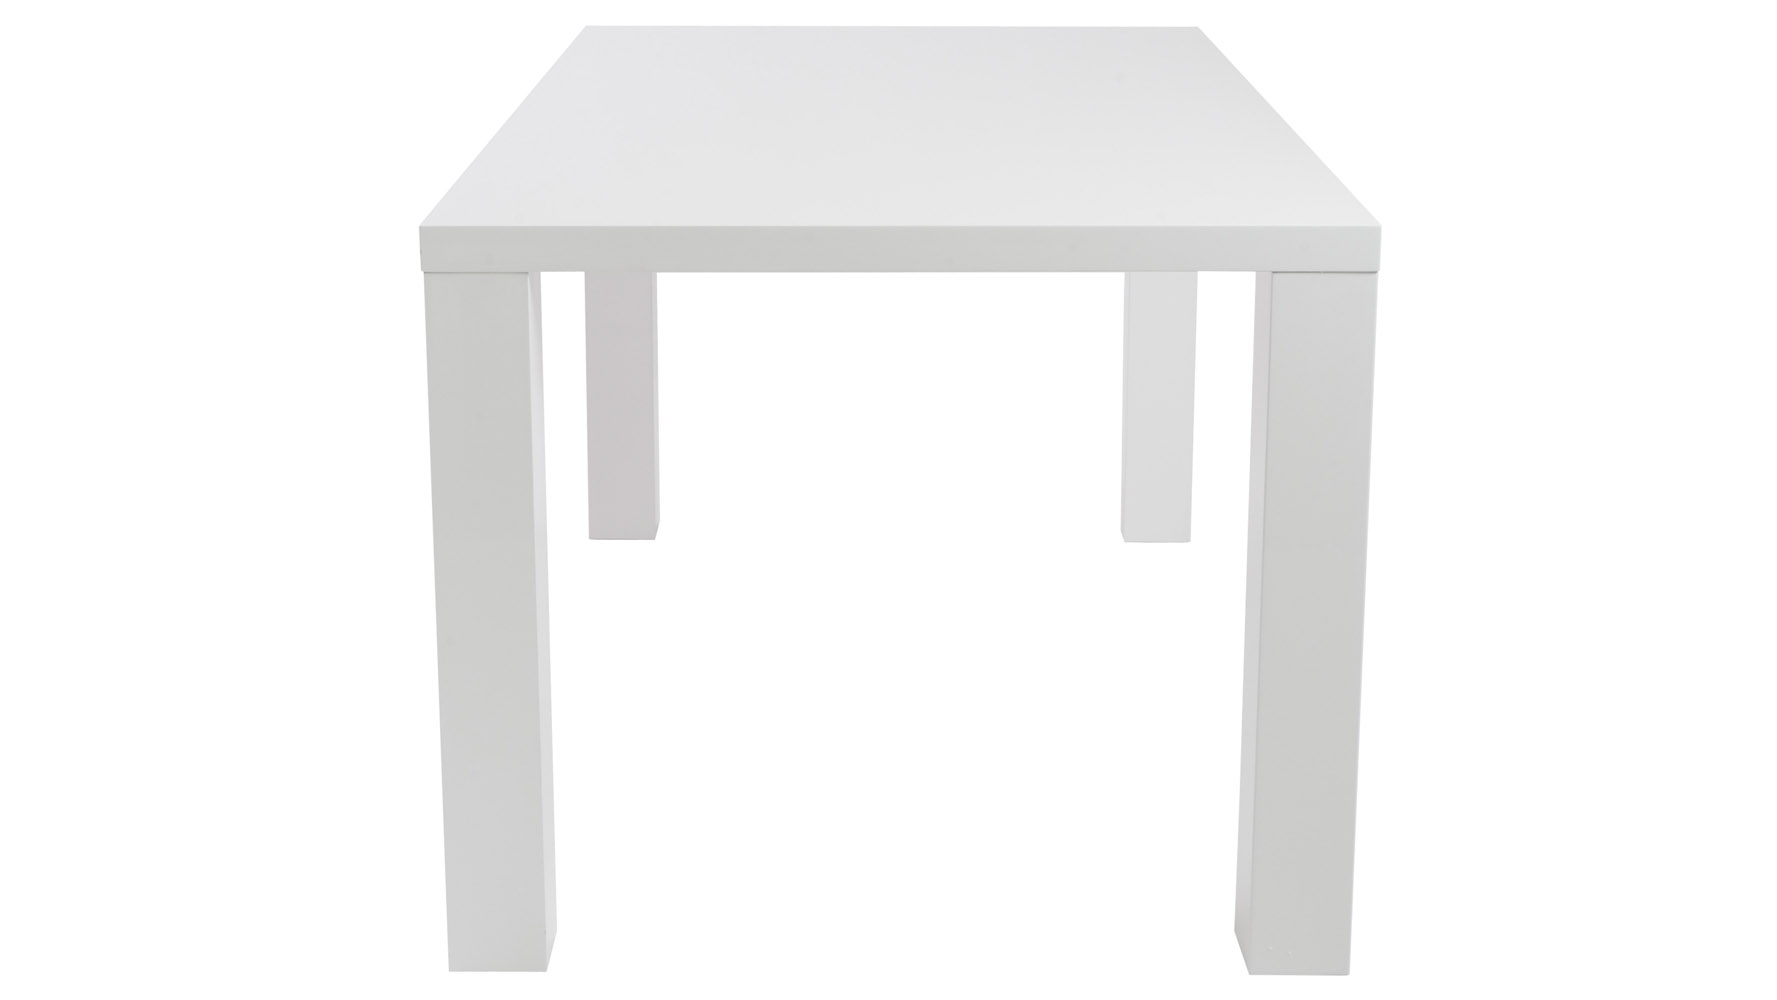 wren contemporary high gloss lacquer dining table zuri furniture white accent pier one art bedside stand bbq prep decorating console entryway lamps kmart canadian tire patio extra